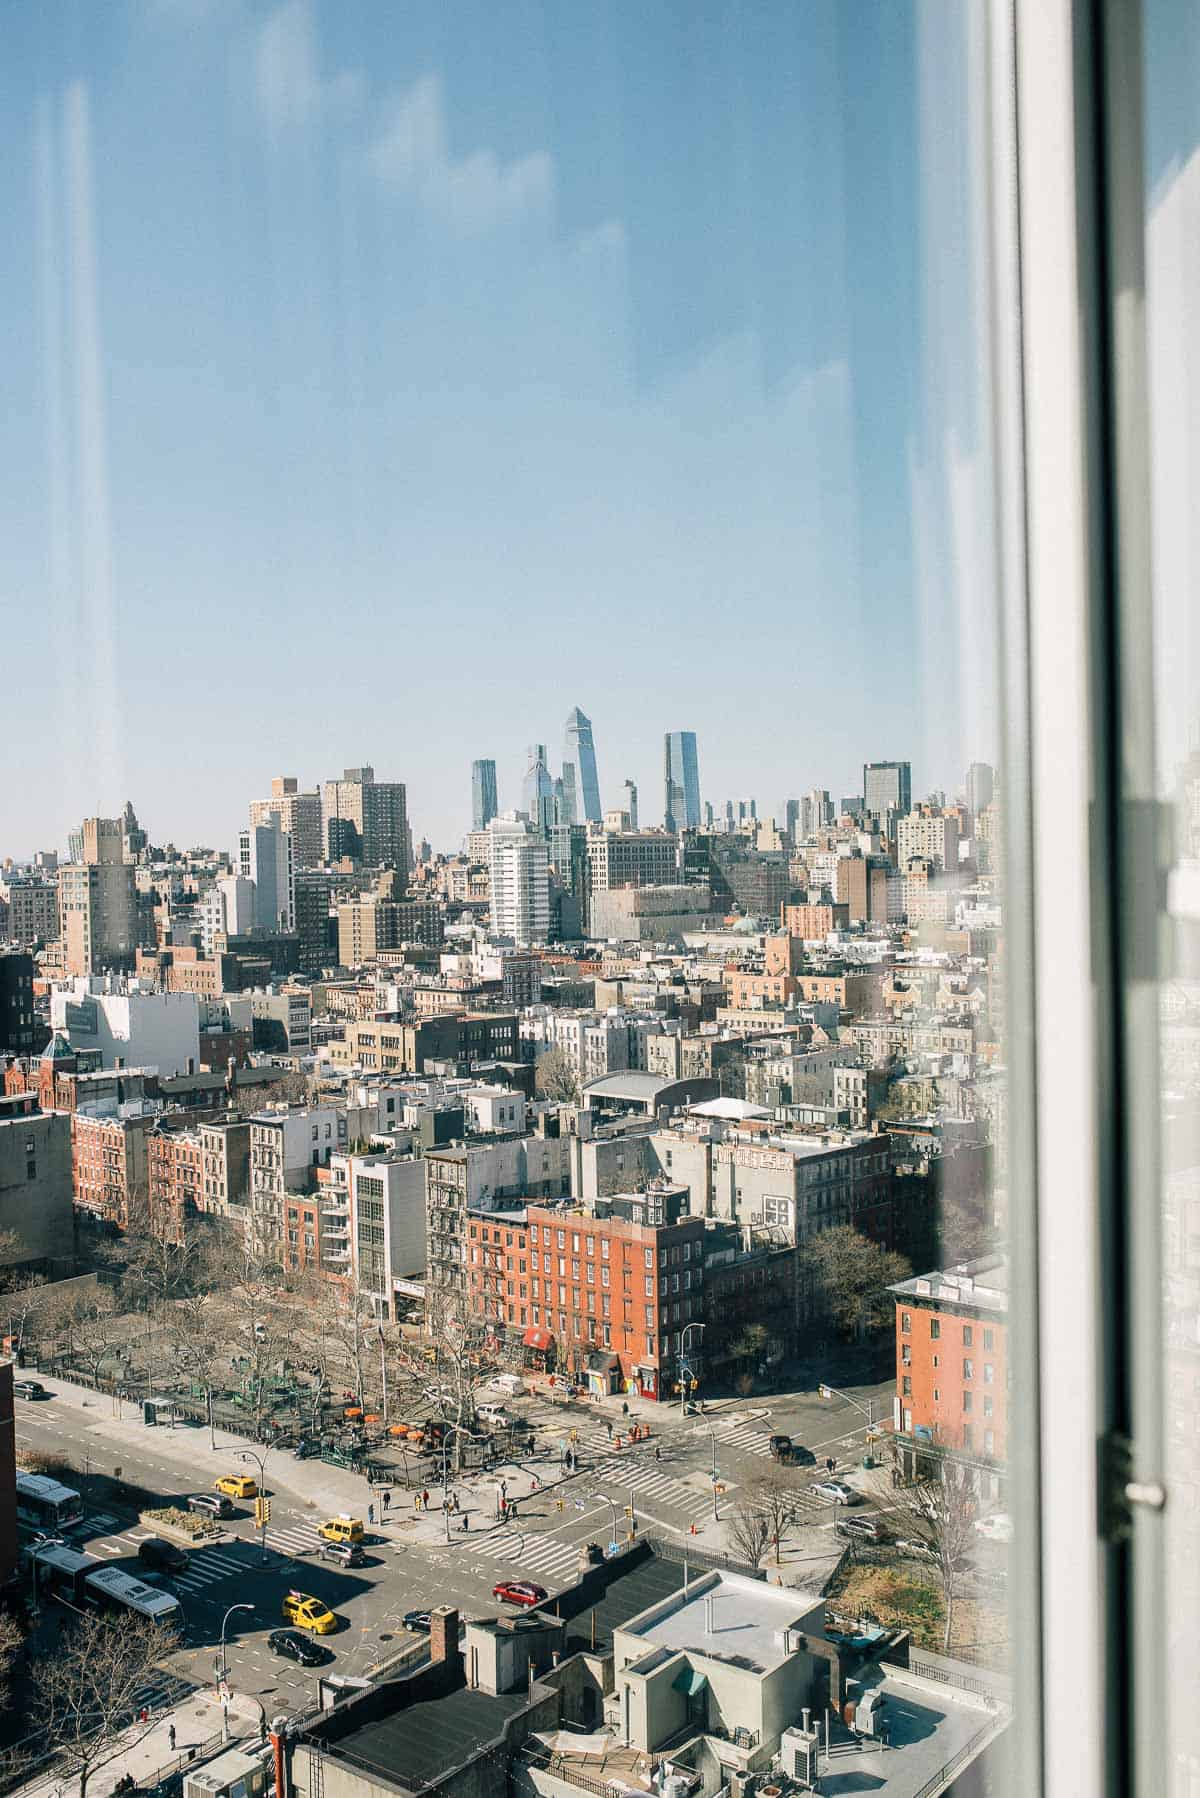 The Hotel Indigo Lower East Side, A Must For Your Next Visit To NYC